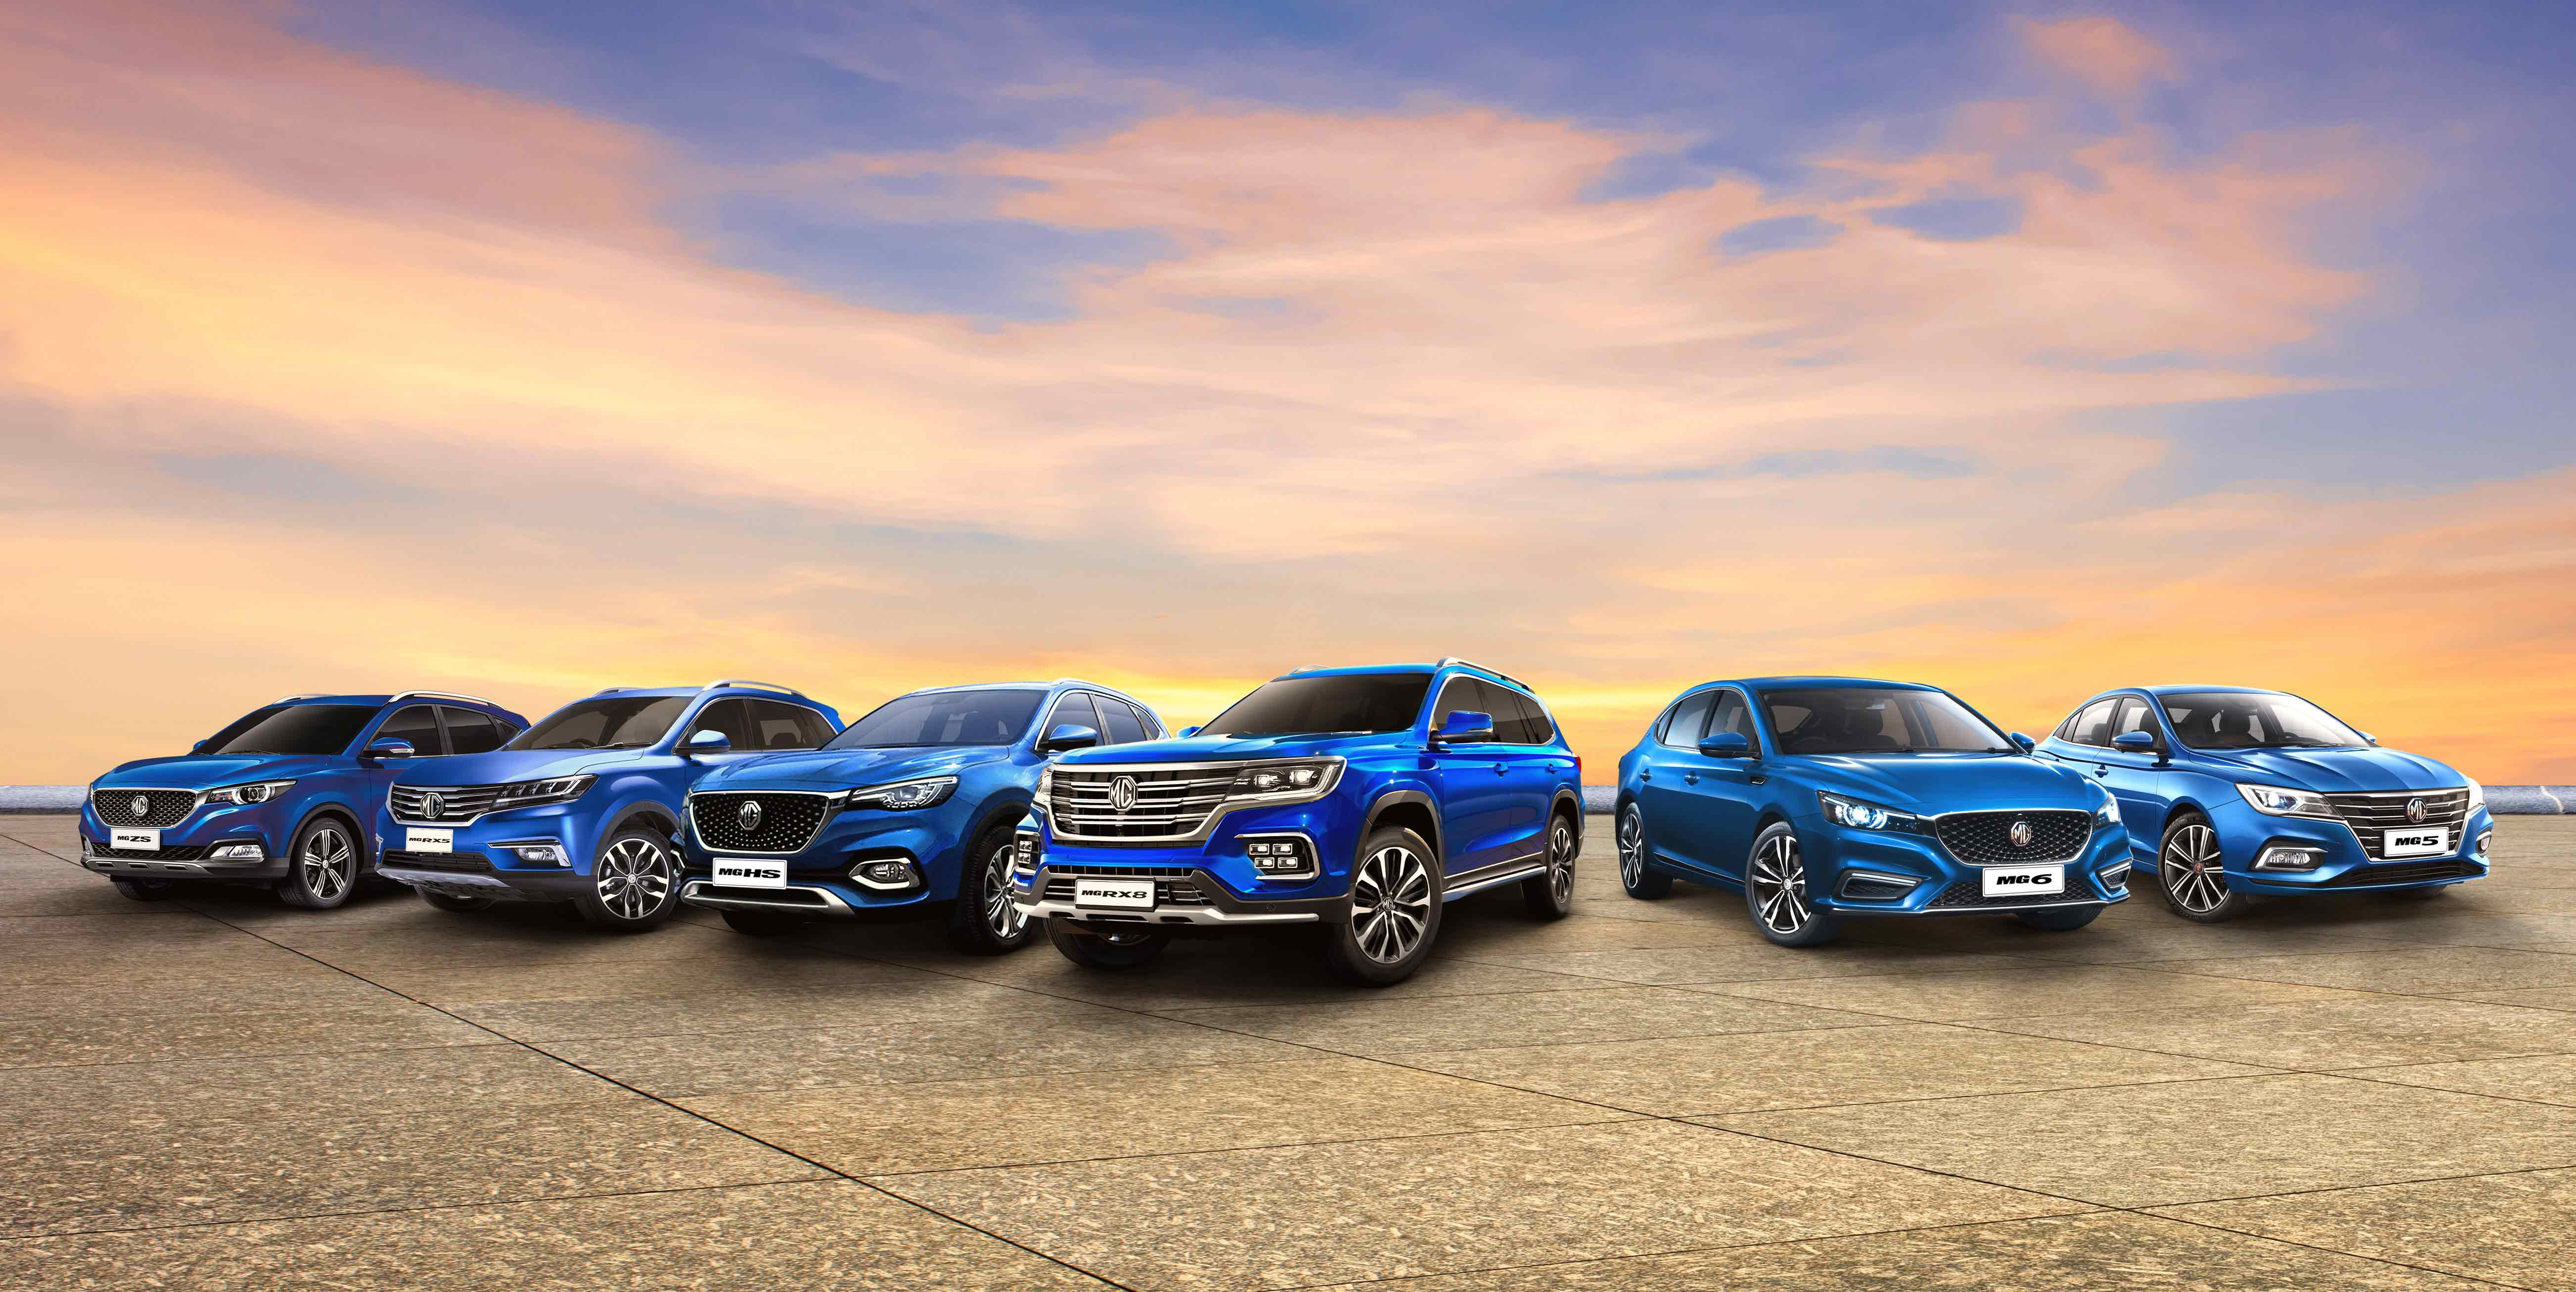 SAIC Motor ranks 7th among world's top car manufacturers in the  Fortune Global 500 list